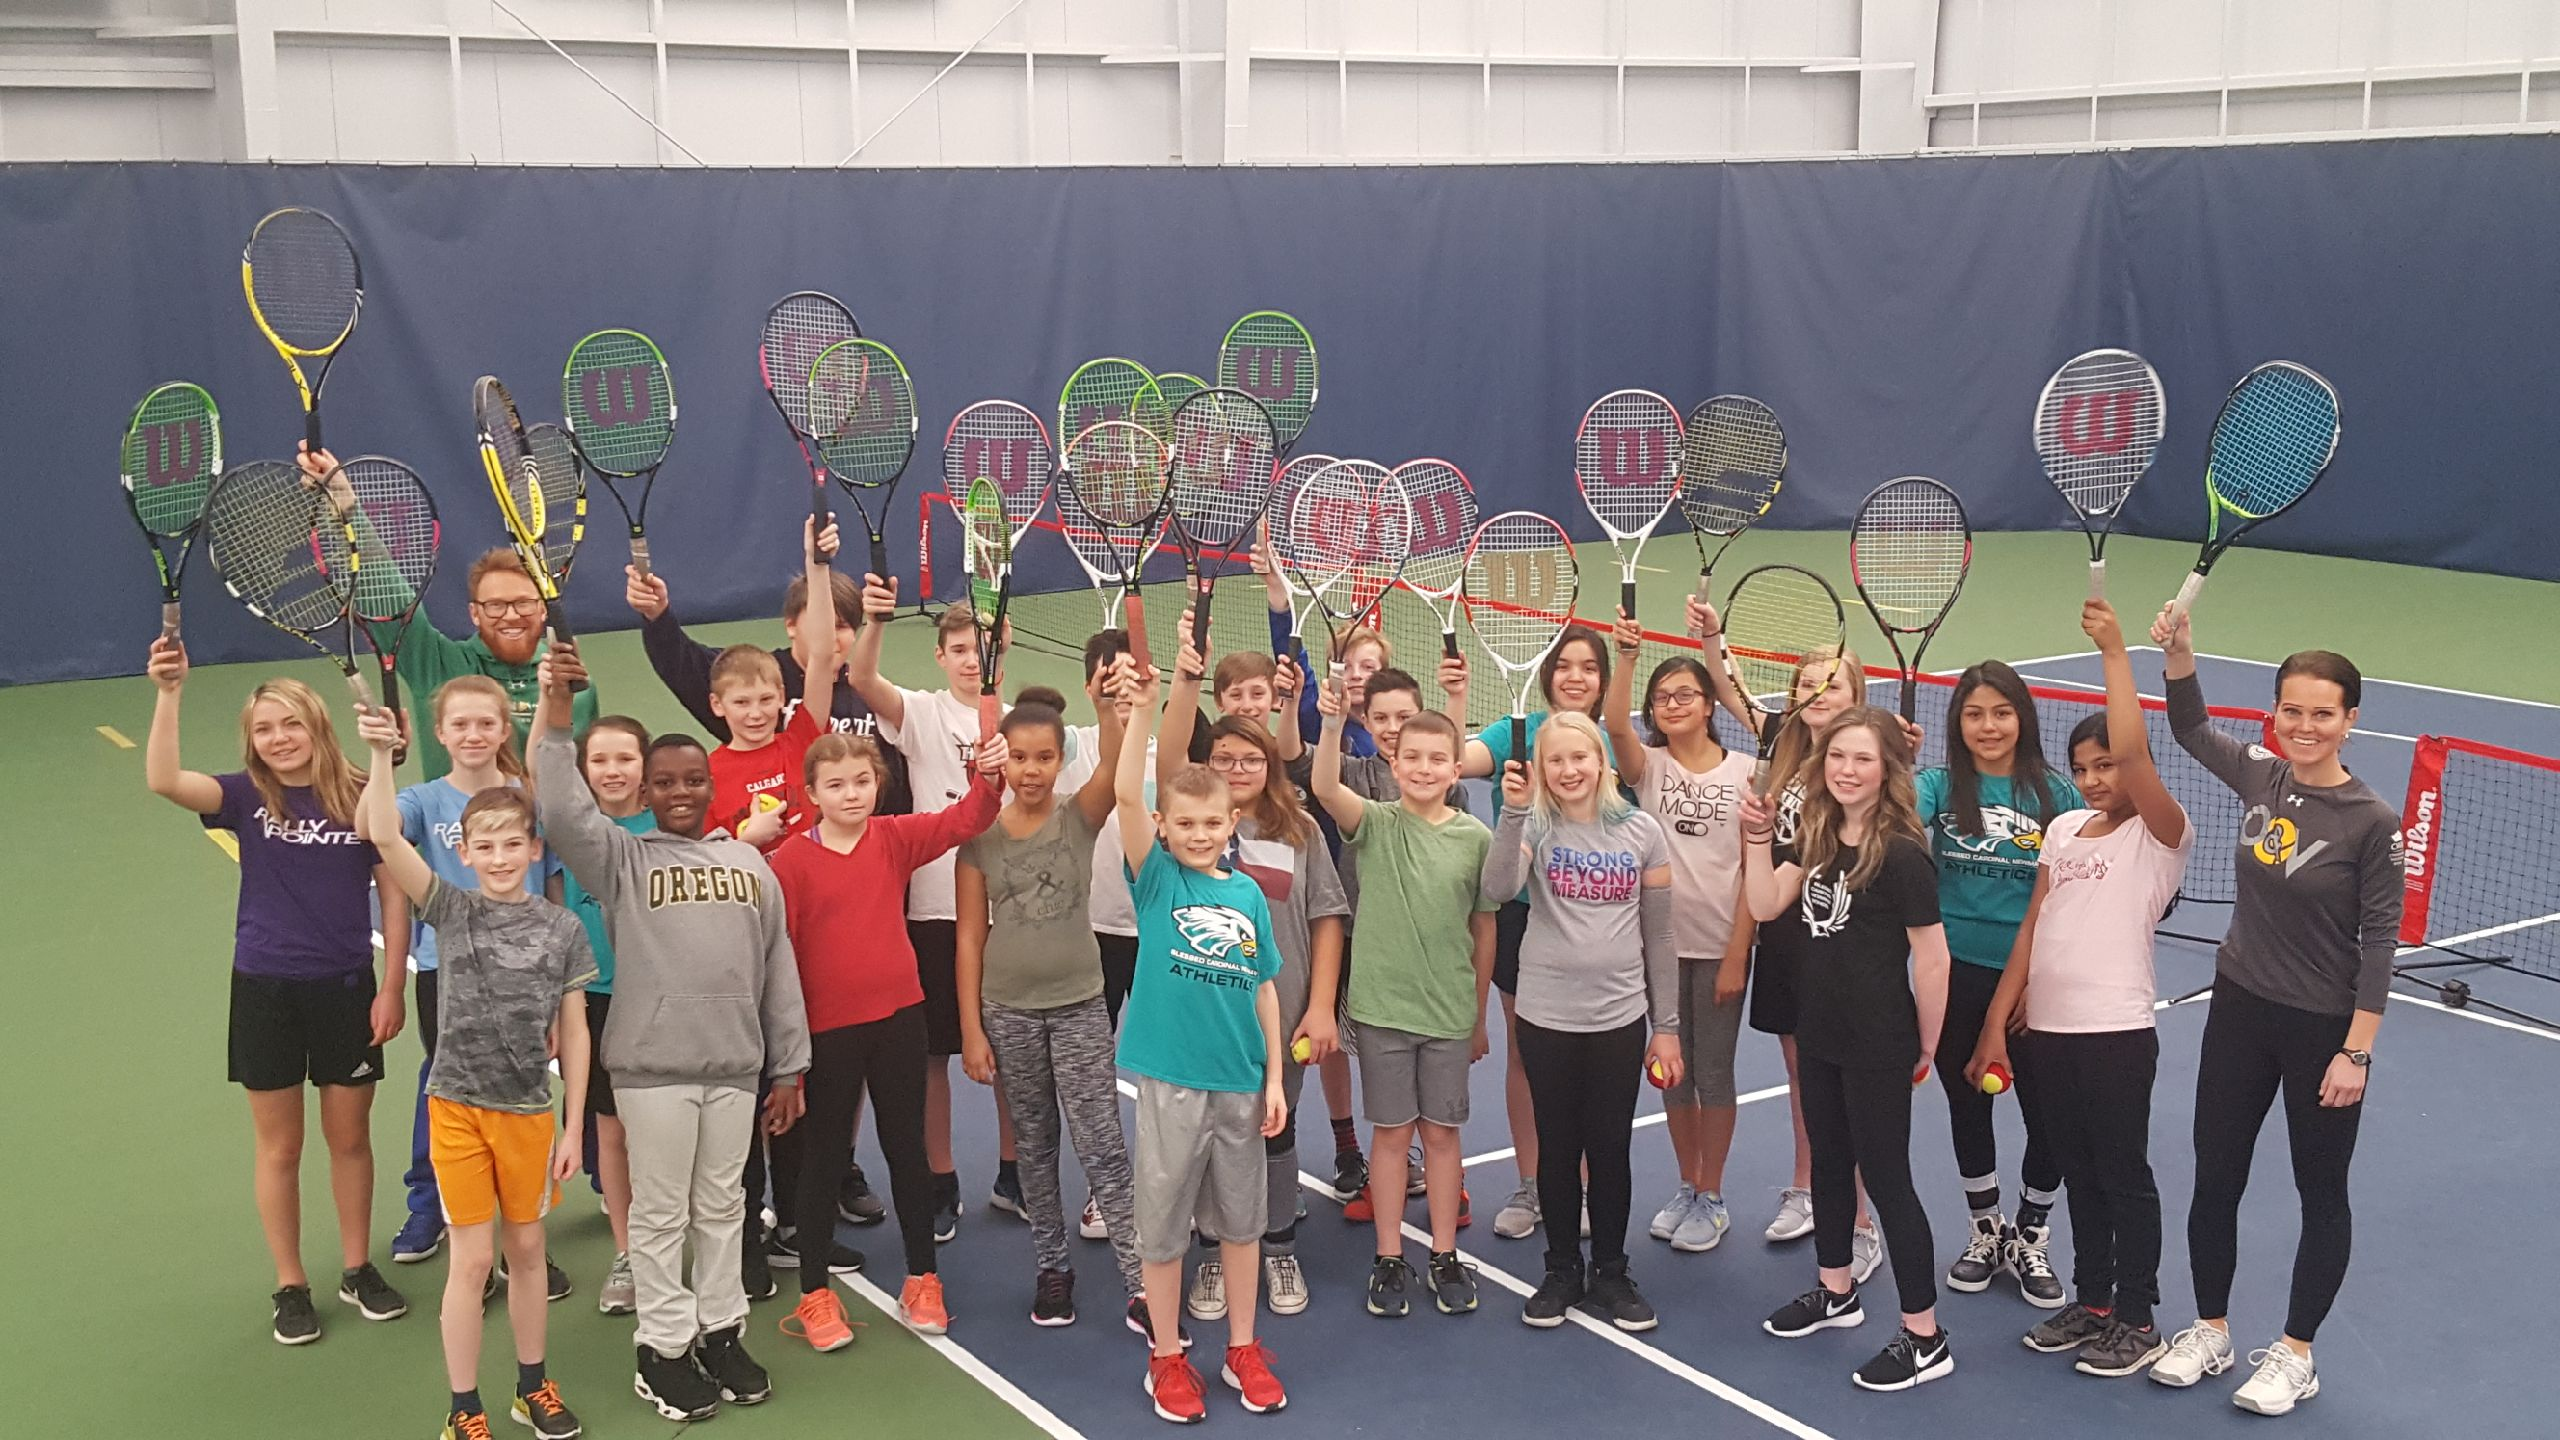 canadian western bank school tennis program making an impact in calgary schools